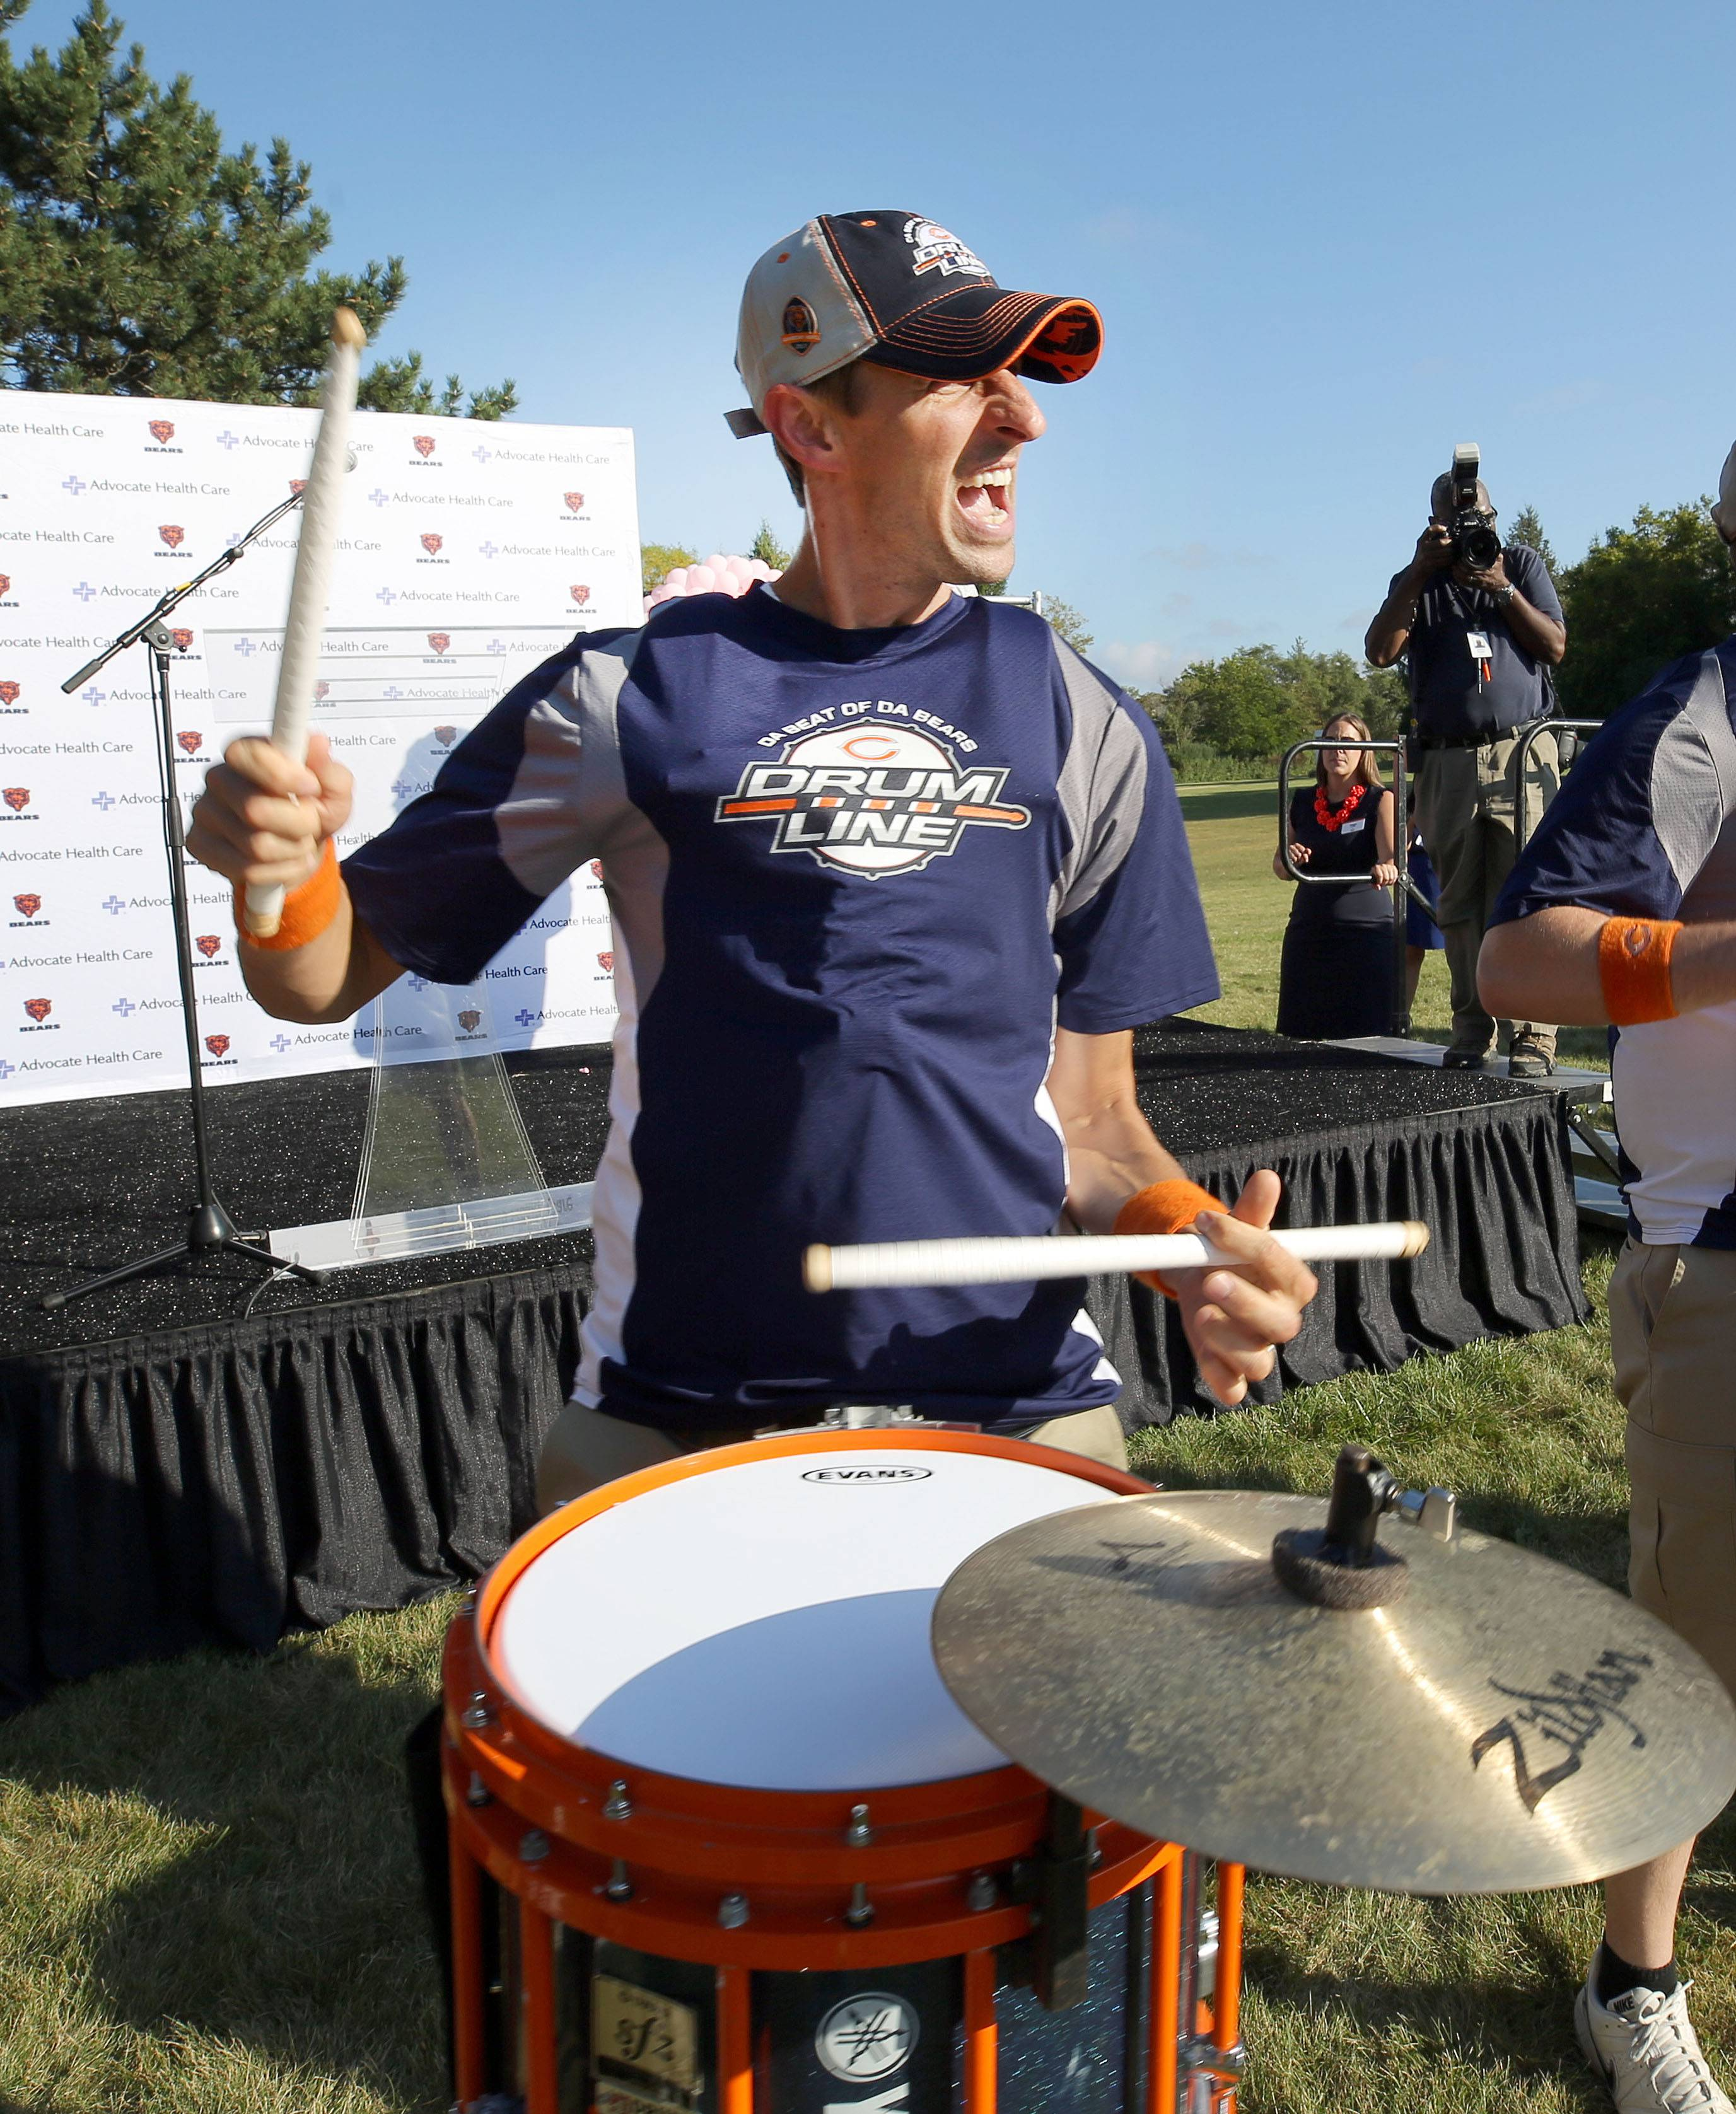 Kevin Gier of Lockport and the Chicago Bears Drum Line entertain people Tuesday during a pep rally for breast cancer awareness at Advocate Condell Medical Center in Libertyville.